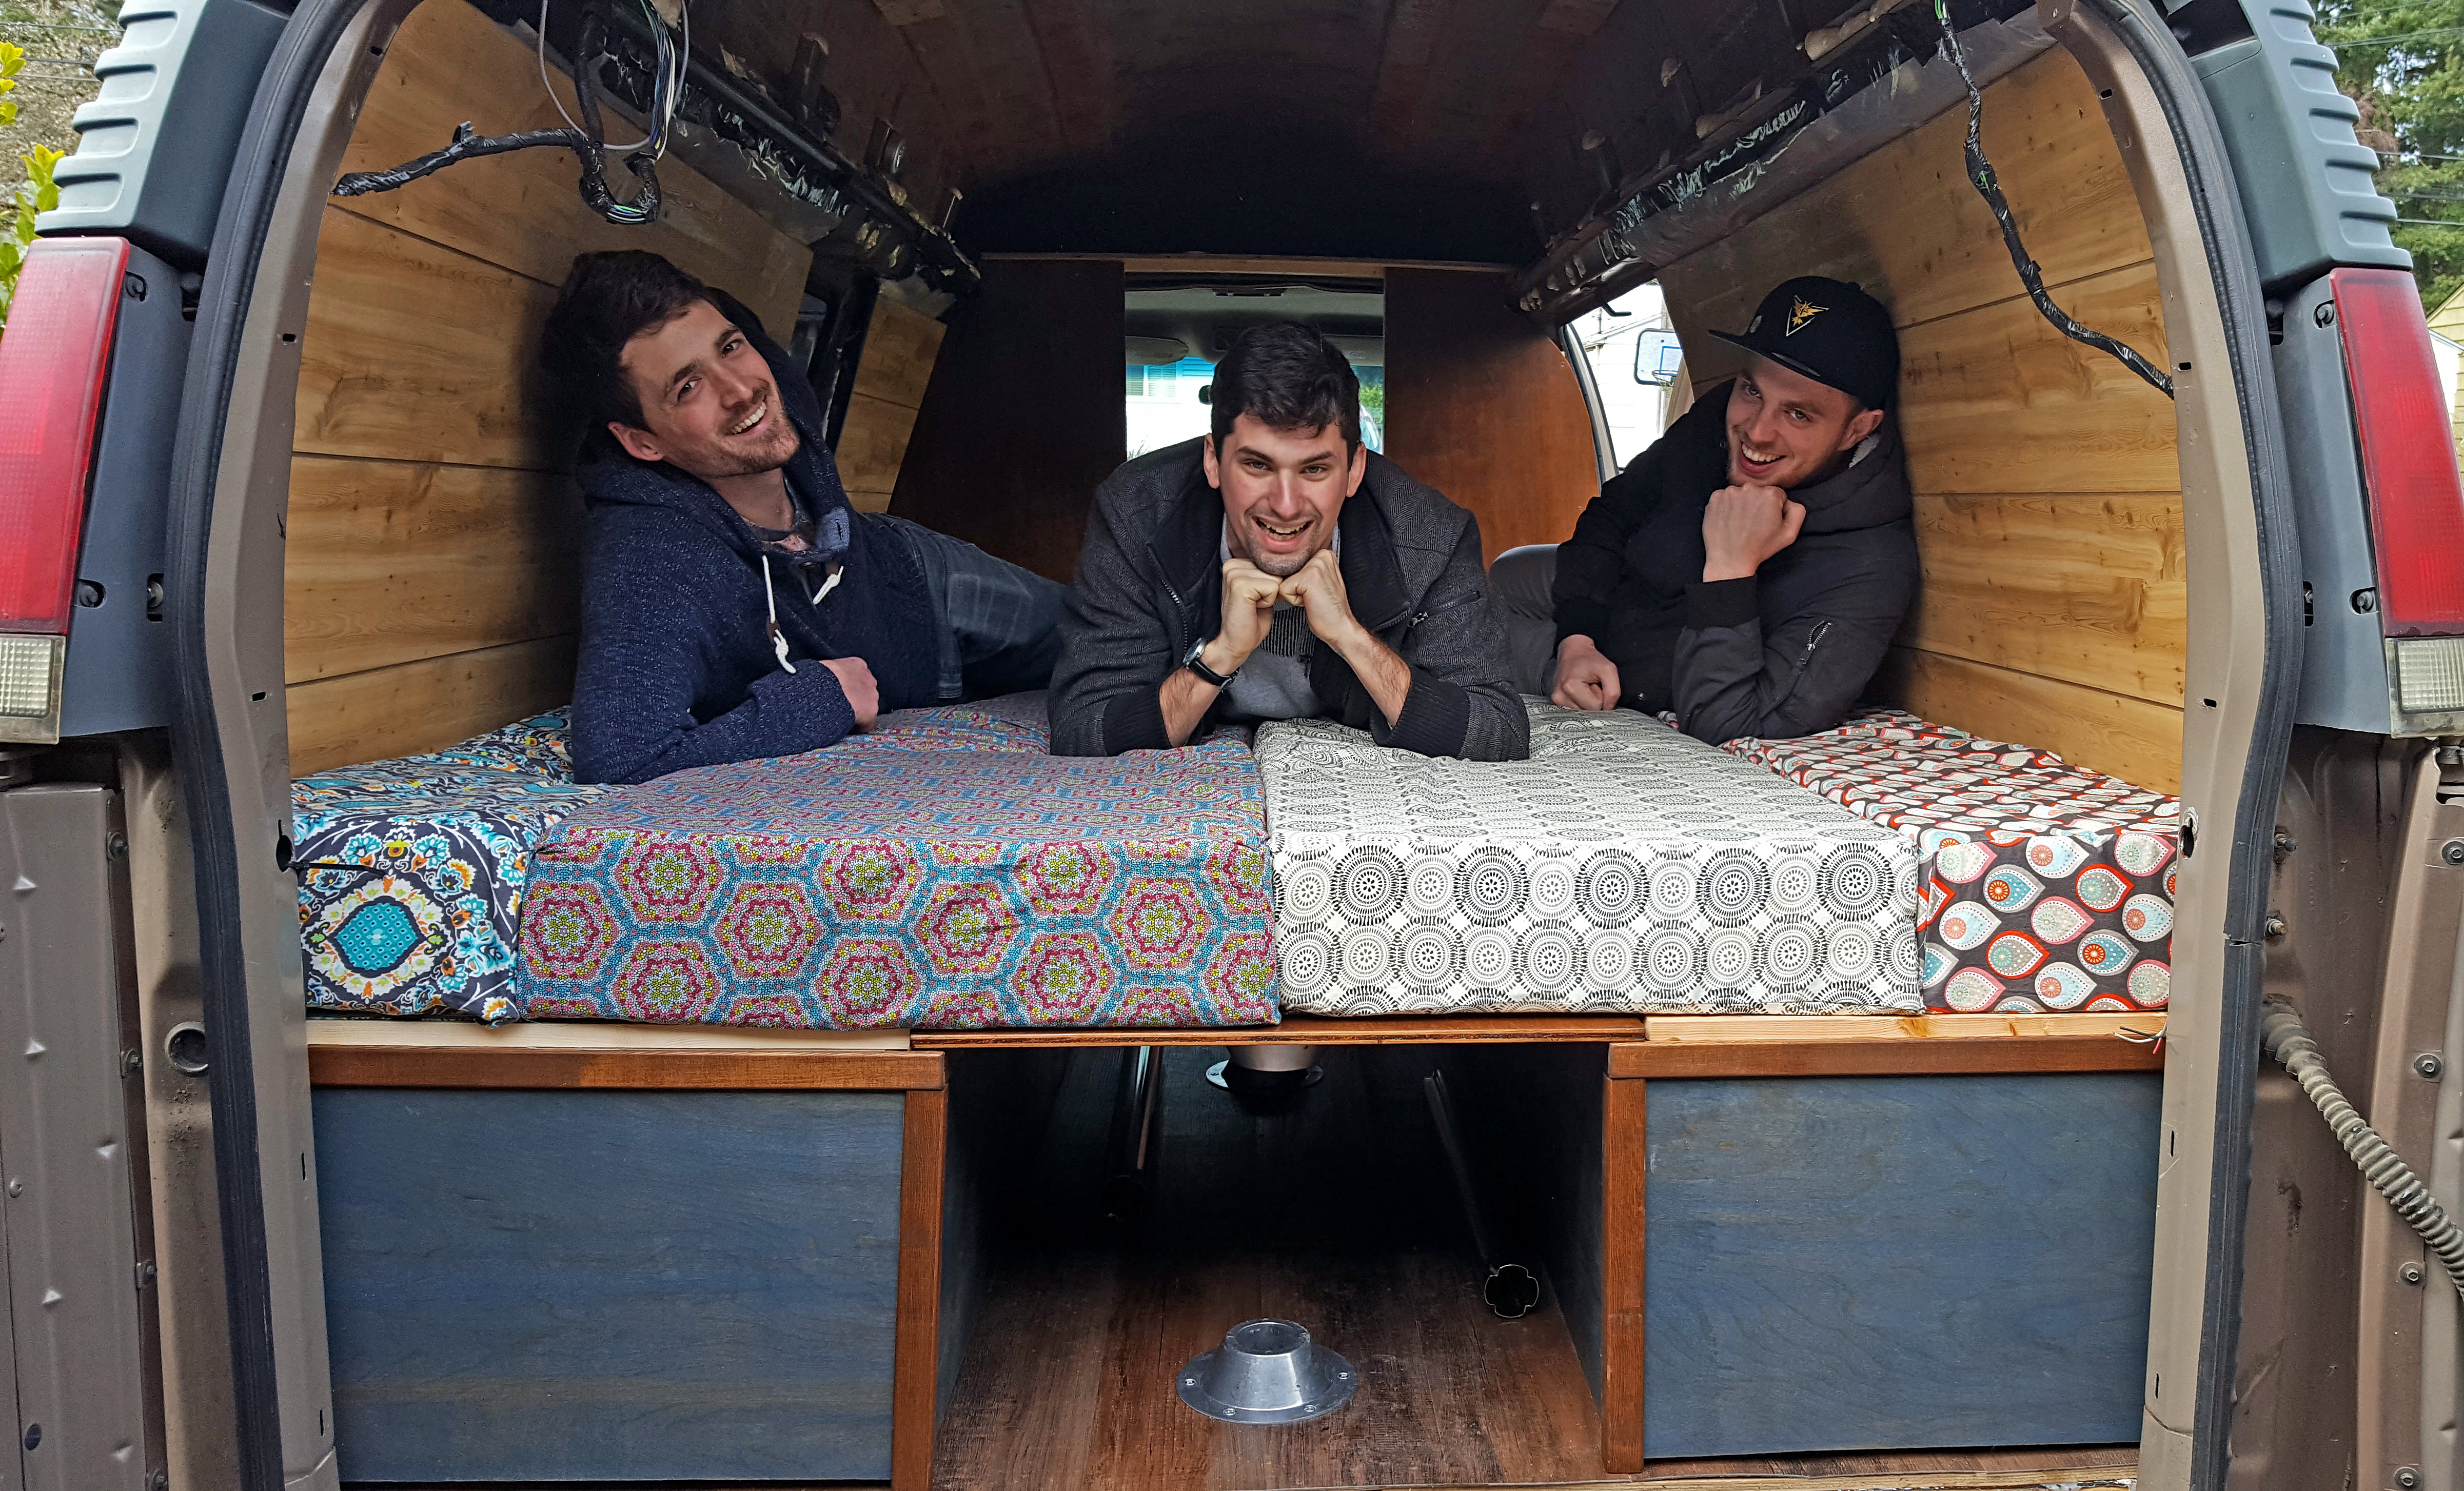 DIY Camper Van Bed And Table Construction Tutorial